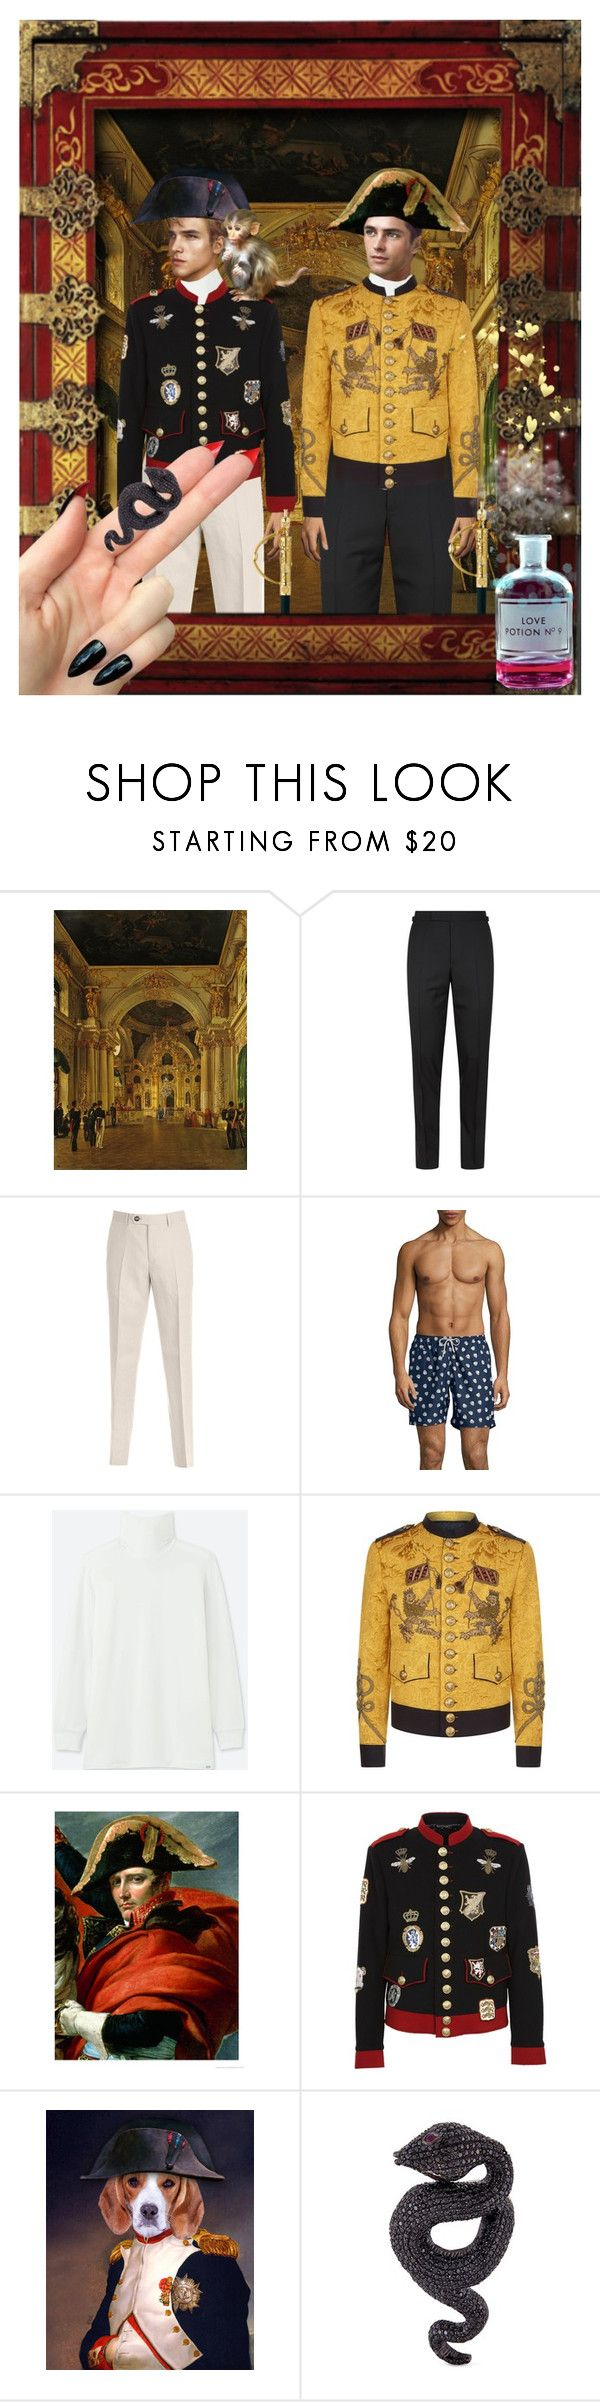 """""""The Heirs"""" by thymagine ❤ liked on Polyvore featuring Disney, Tom Ford, Brunello Cucinelli, Black Brown 1826, Uniqlo, Dolce&Gabbana, Mellerio, Lydia Courteille and Martha Stewart"""